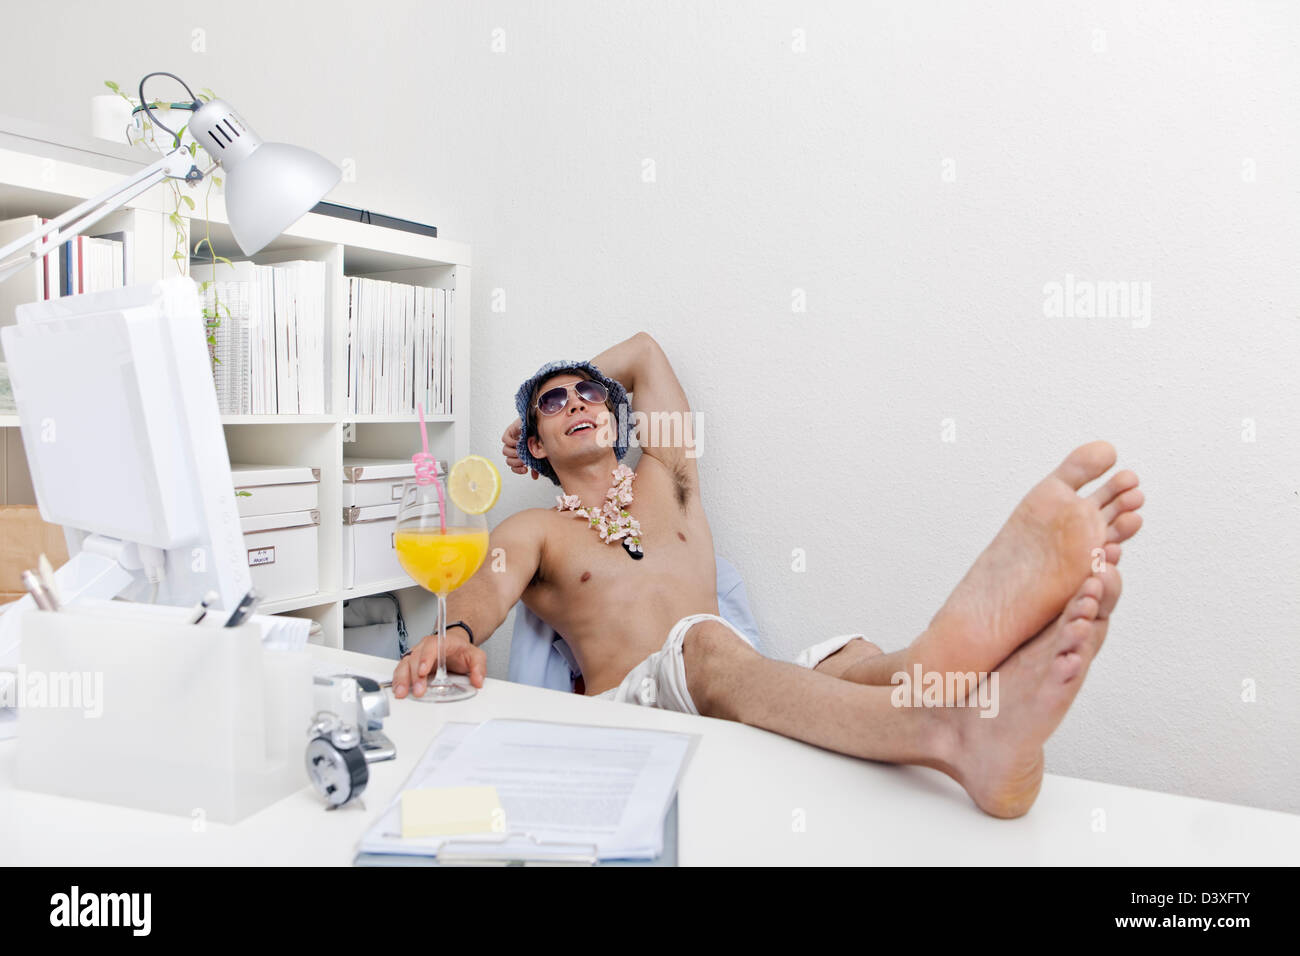 young man in beachwear and sunglasses and and lei (garland) with cocktail drink at work. in holiday mood. - Stock Image